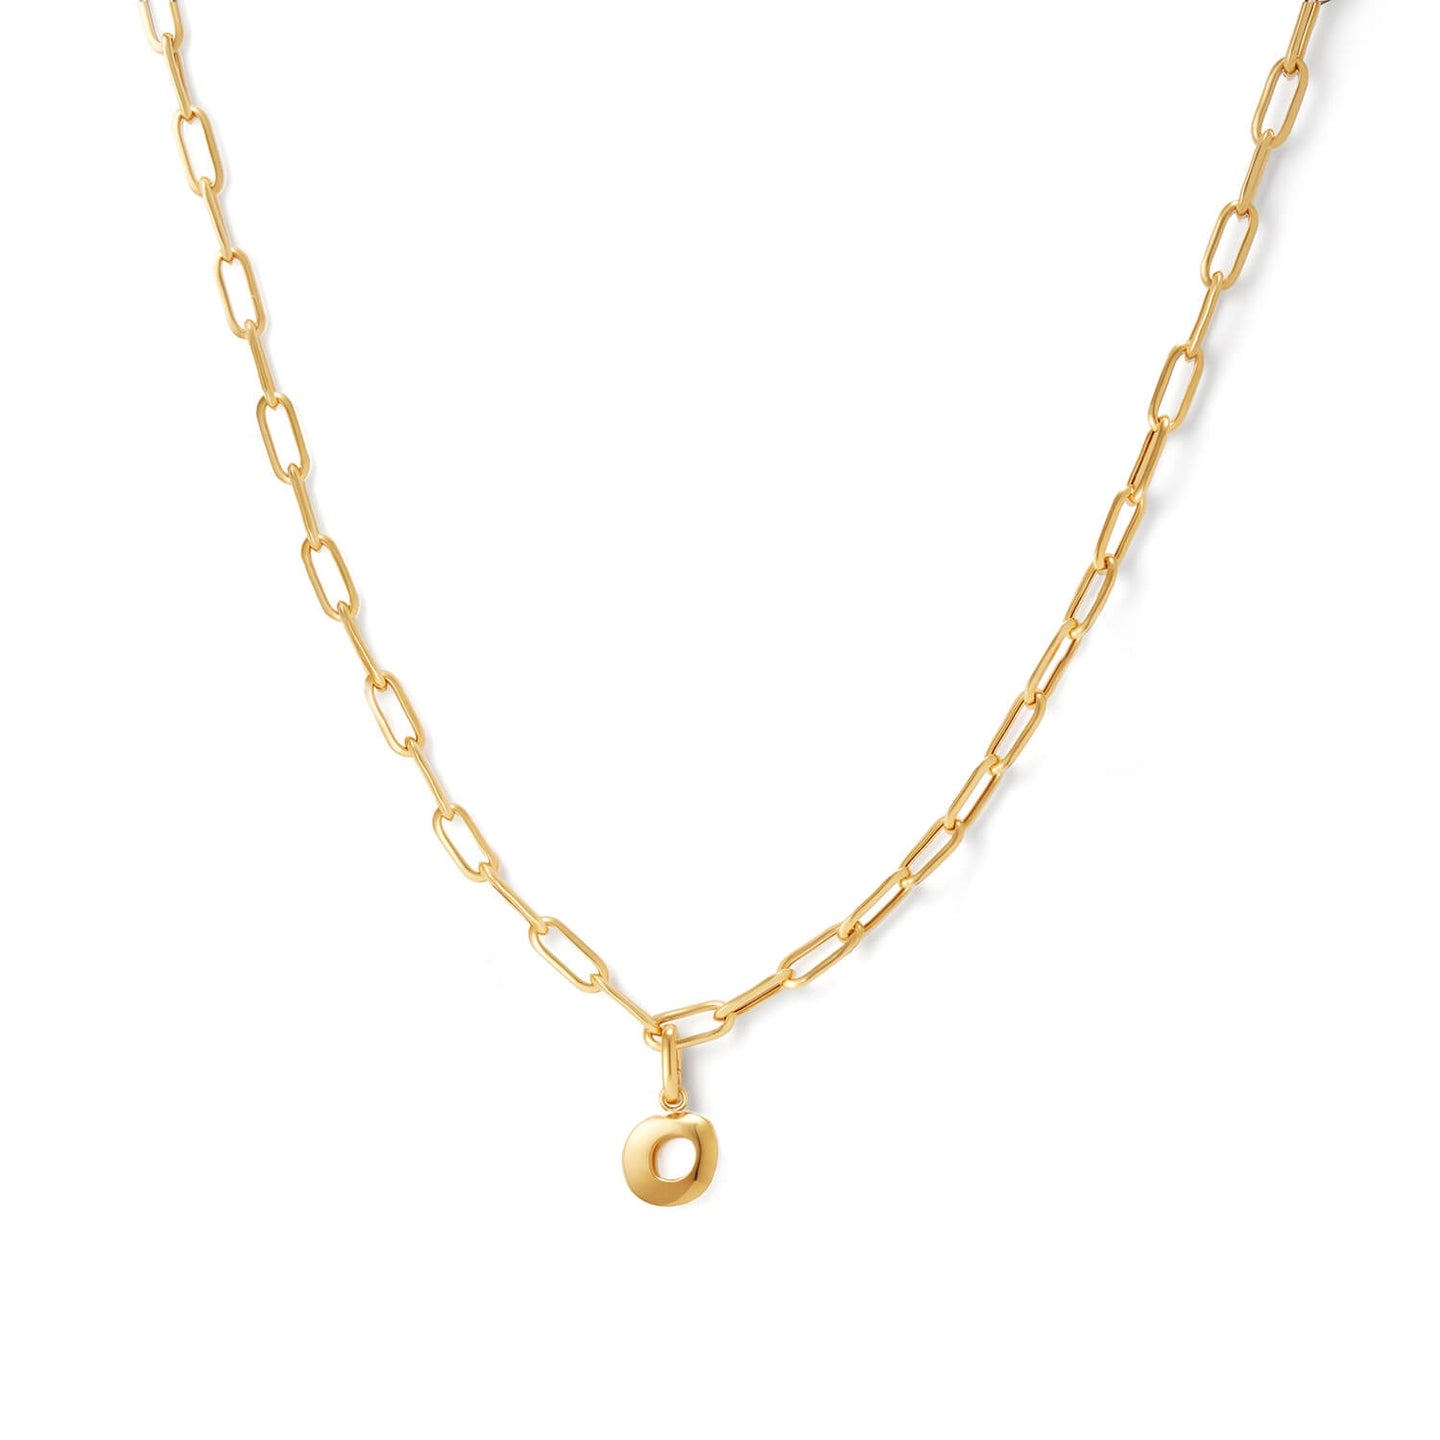 Gold Long Curator Necklace with Charm